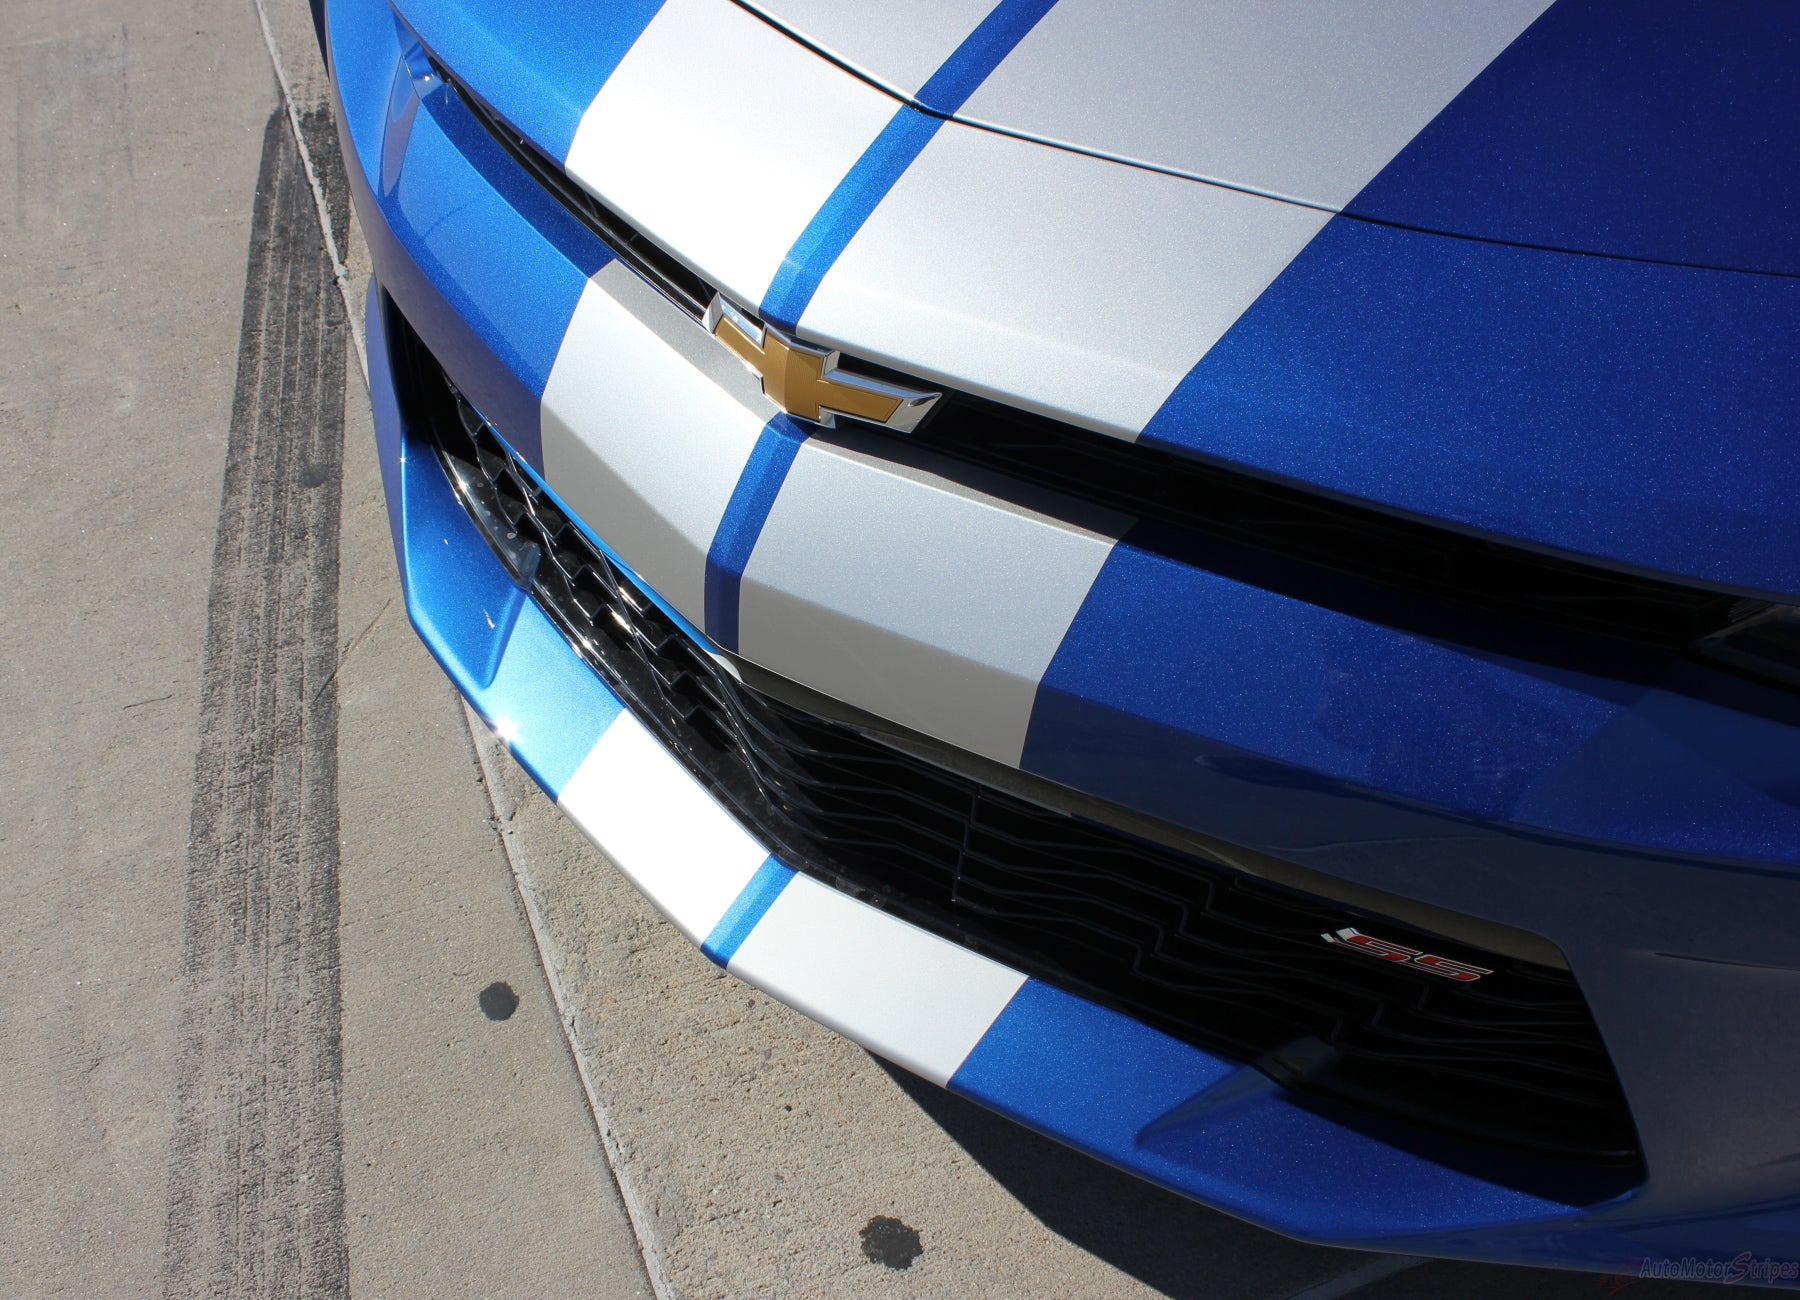 2018 2017 2016 Chevy Camaro Racing Stripes Graphics Hood Decals Turbo Auto Motor Stripes Decals Vinyl Graphics And 3m Striping Kits